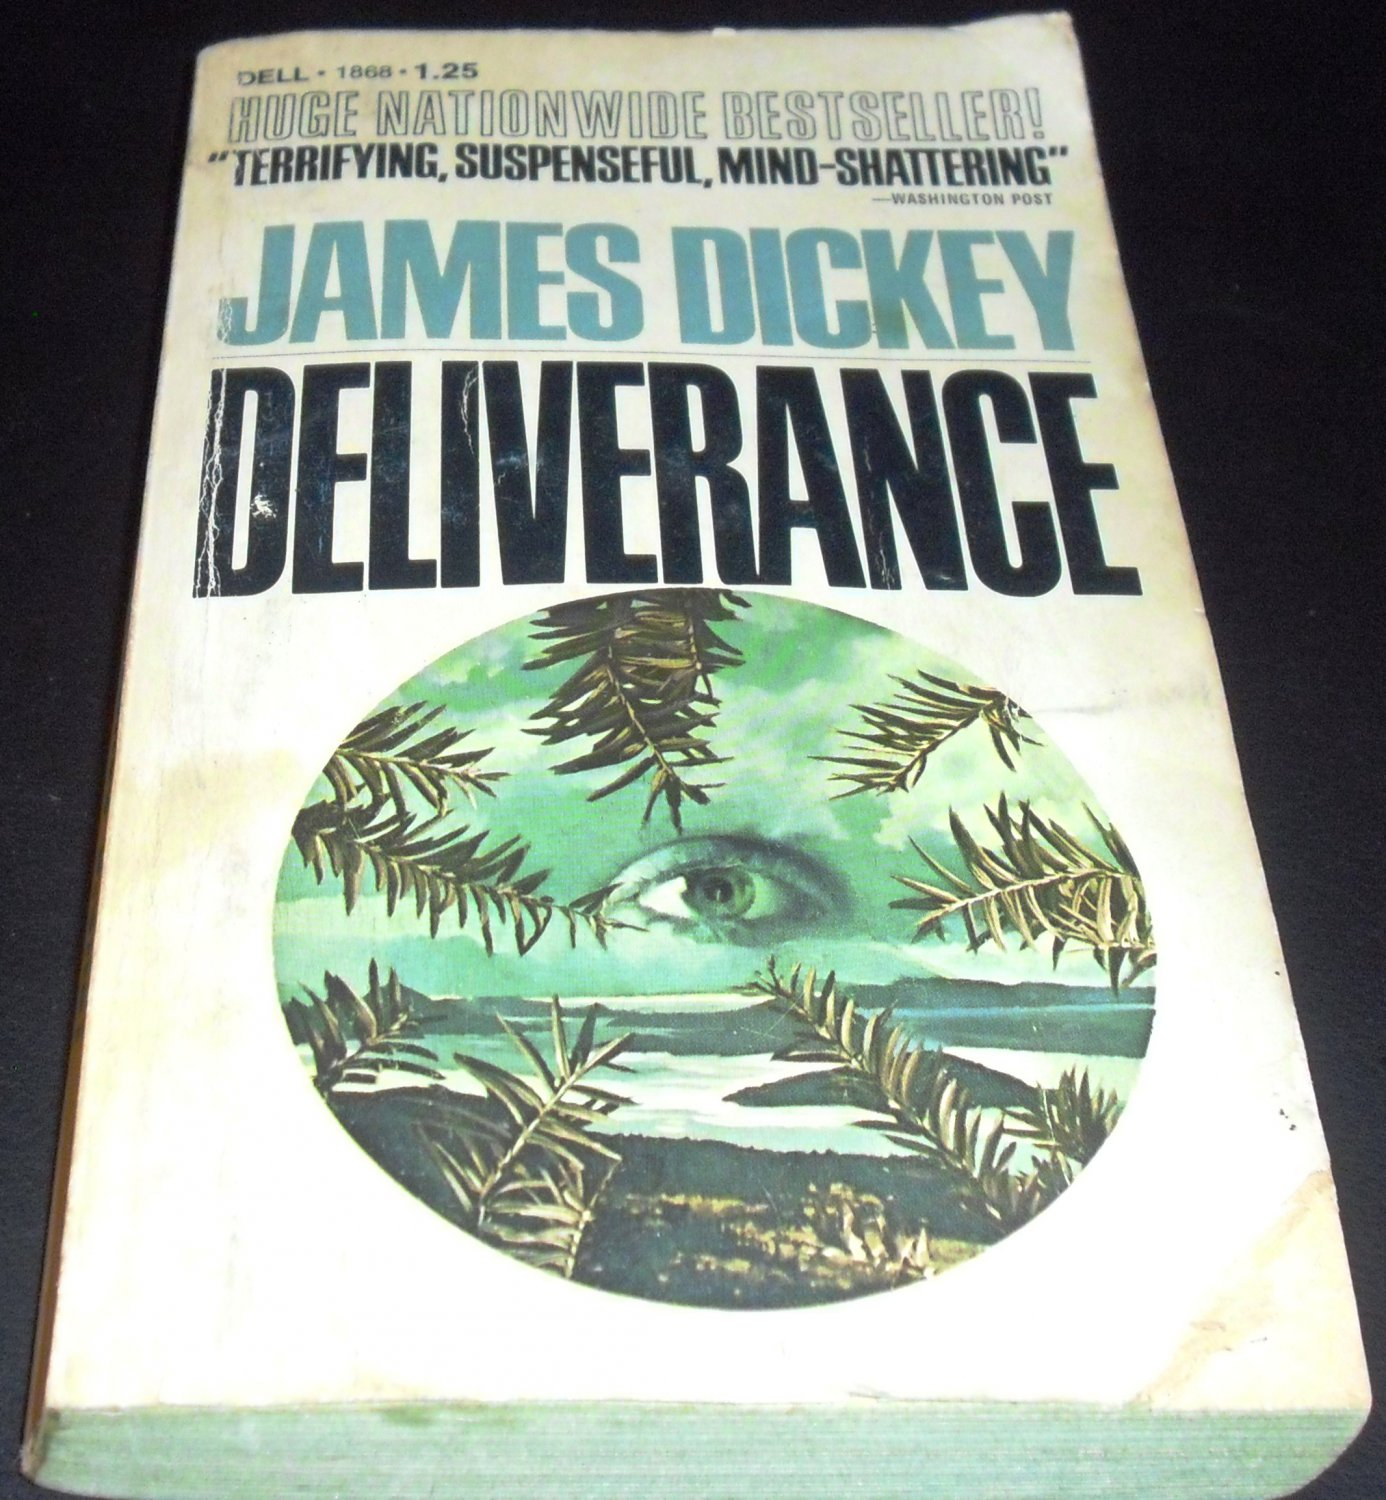 a literary analysis of deliverance by james dickey